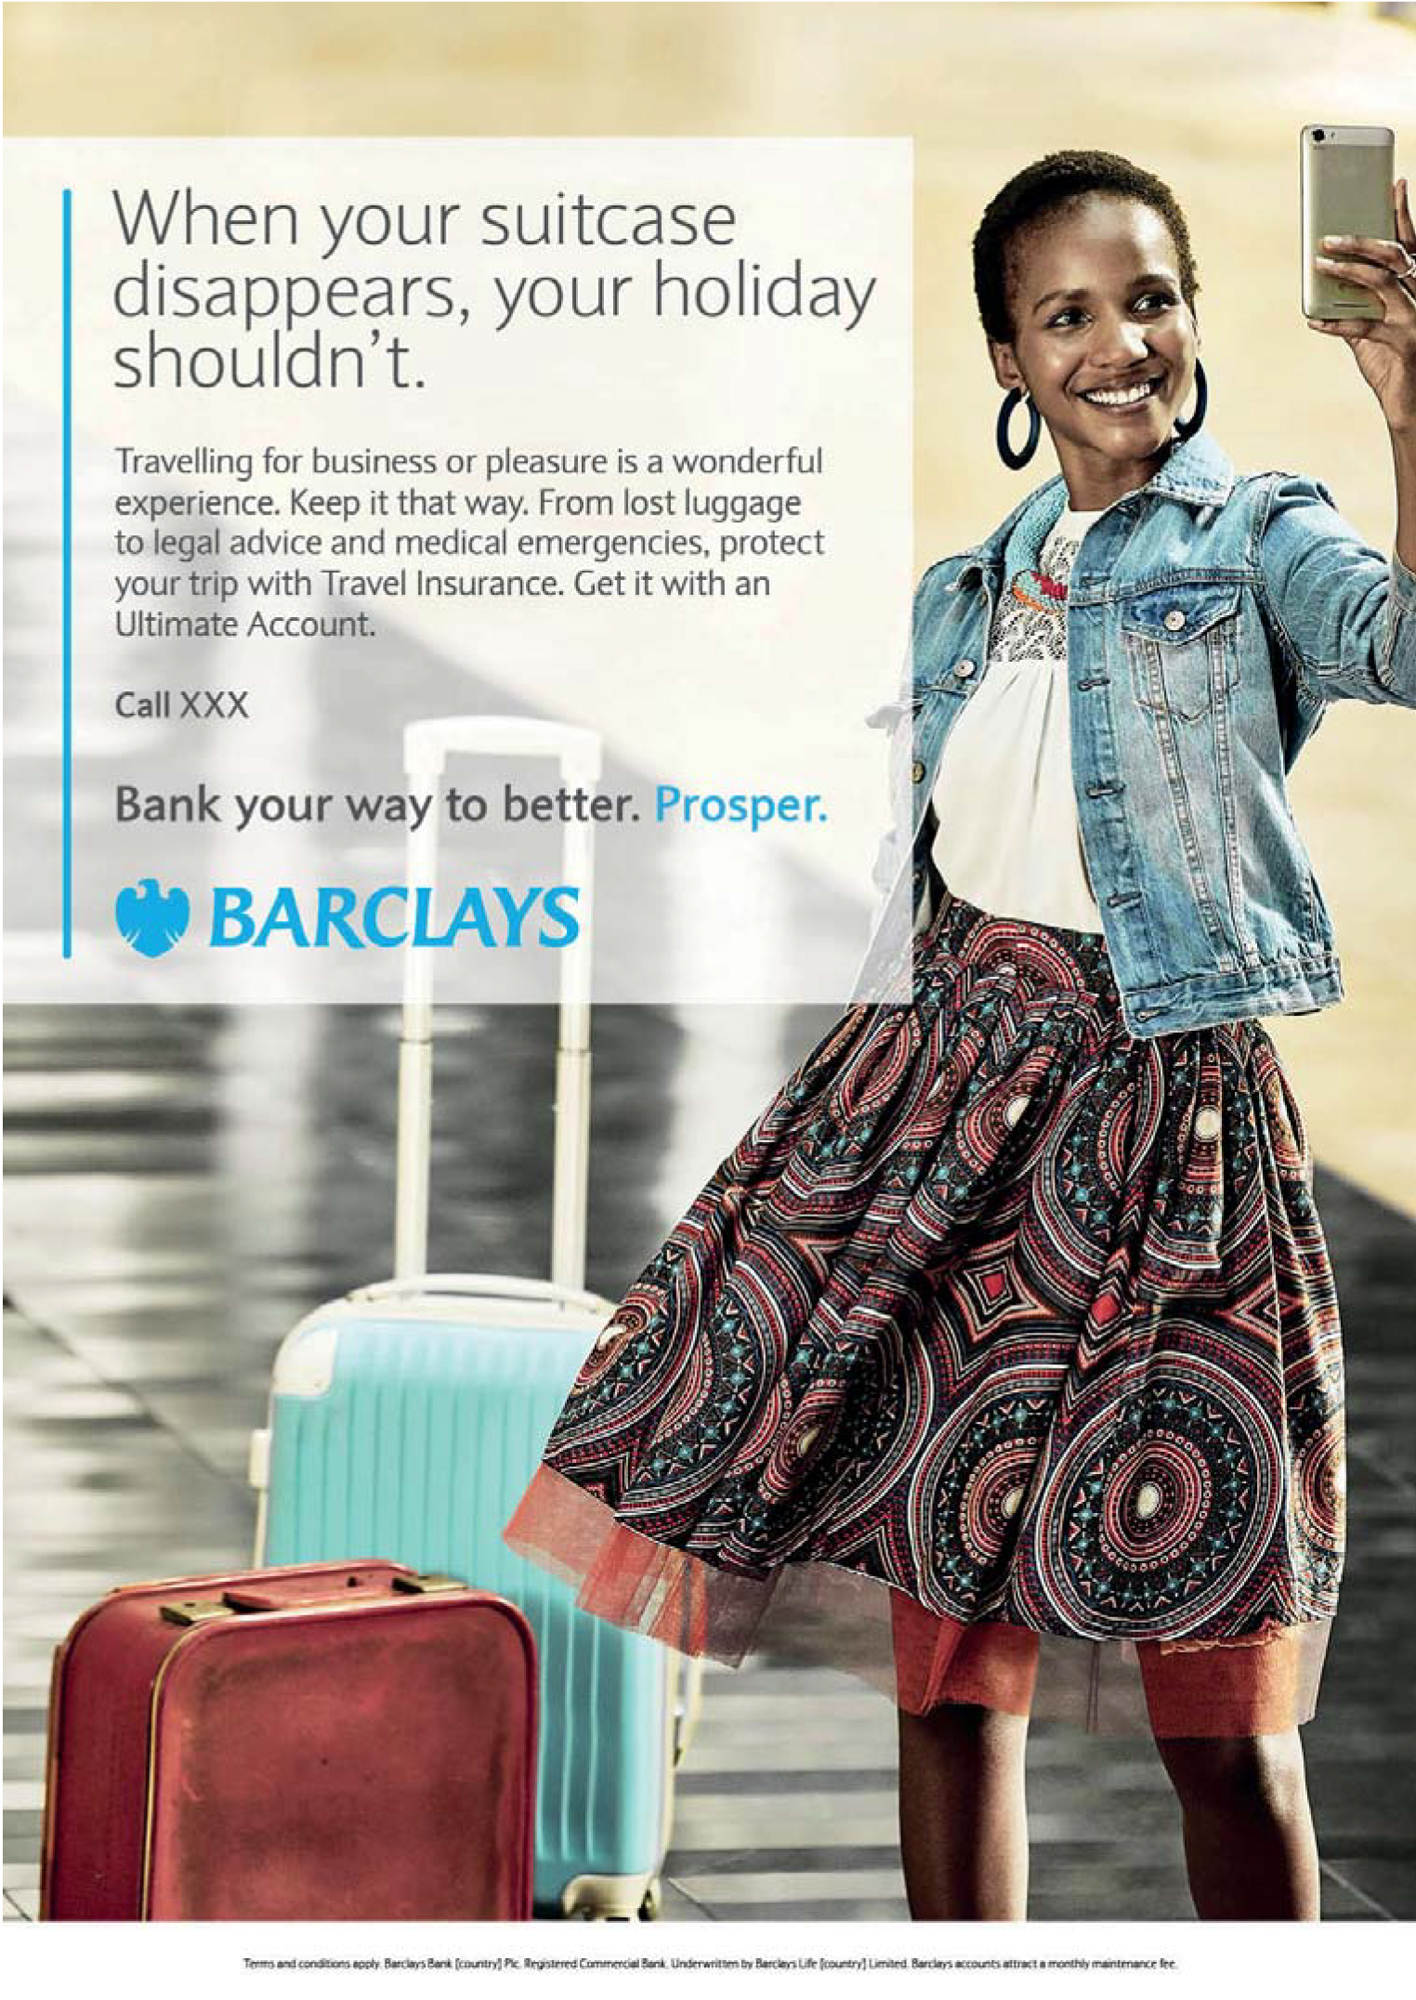 Barclays Personal Banking Campaign Toolkit 26 APRIL-109.jpg